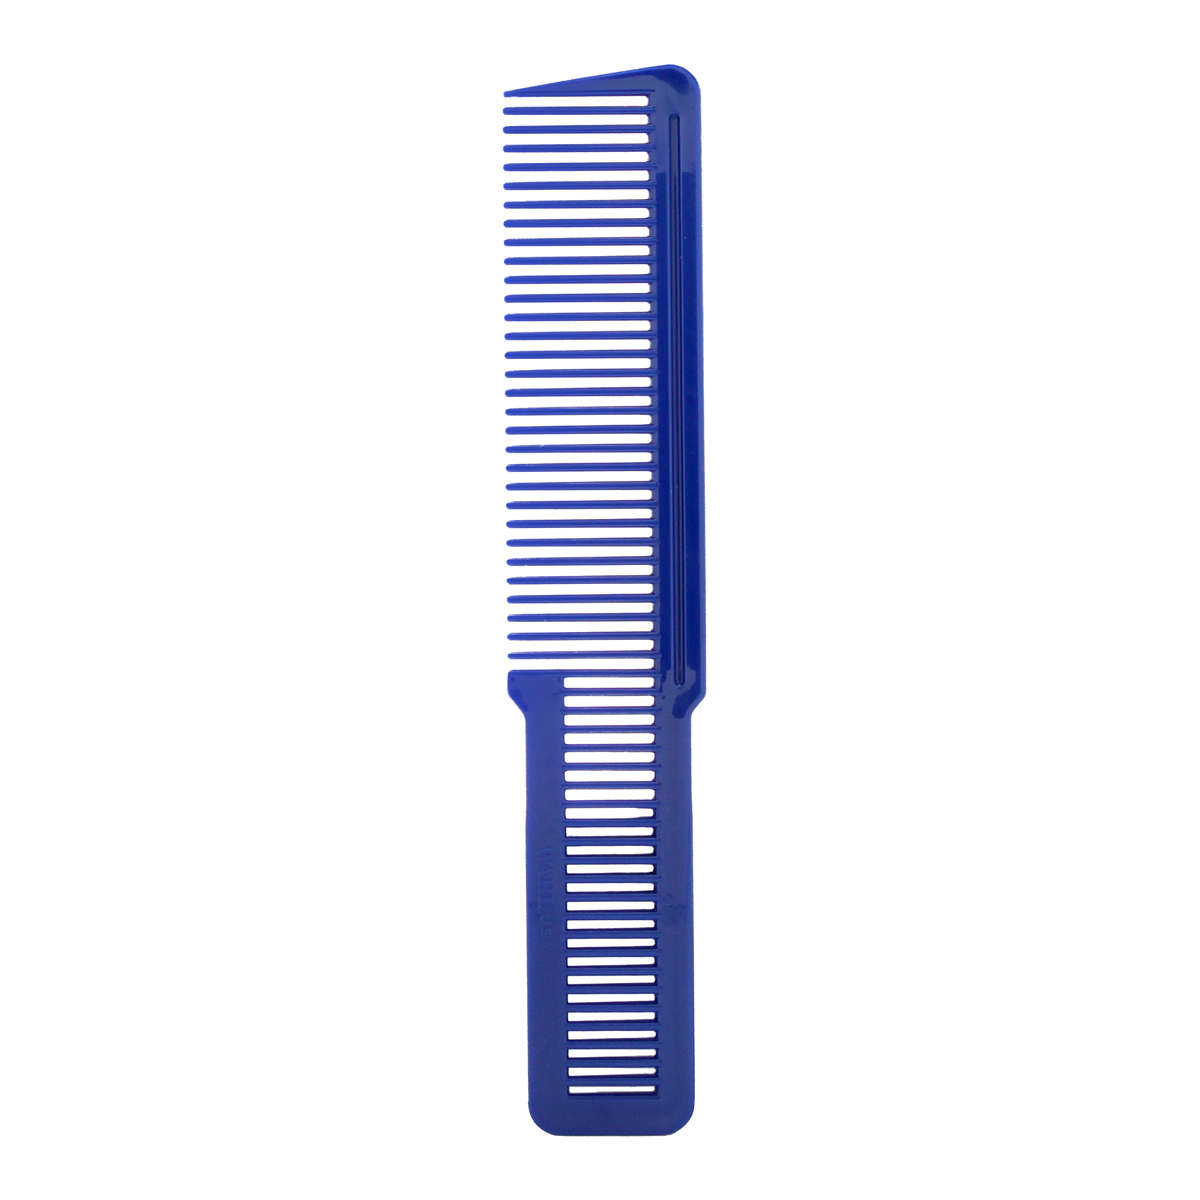 Wahl-Sepatu-Kuda-(Clipper-Combs)-2T-WC-Blue-Edited-sfw